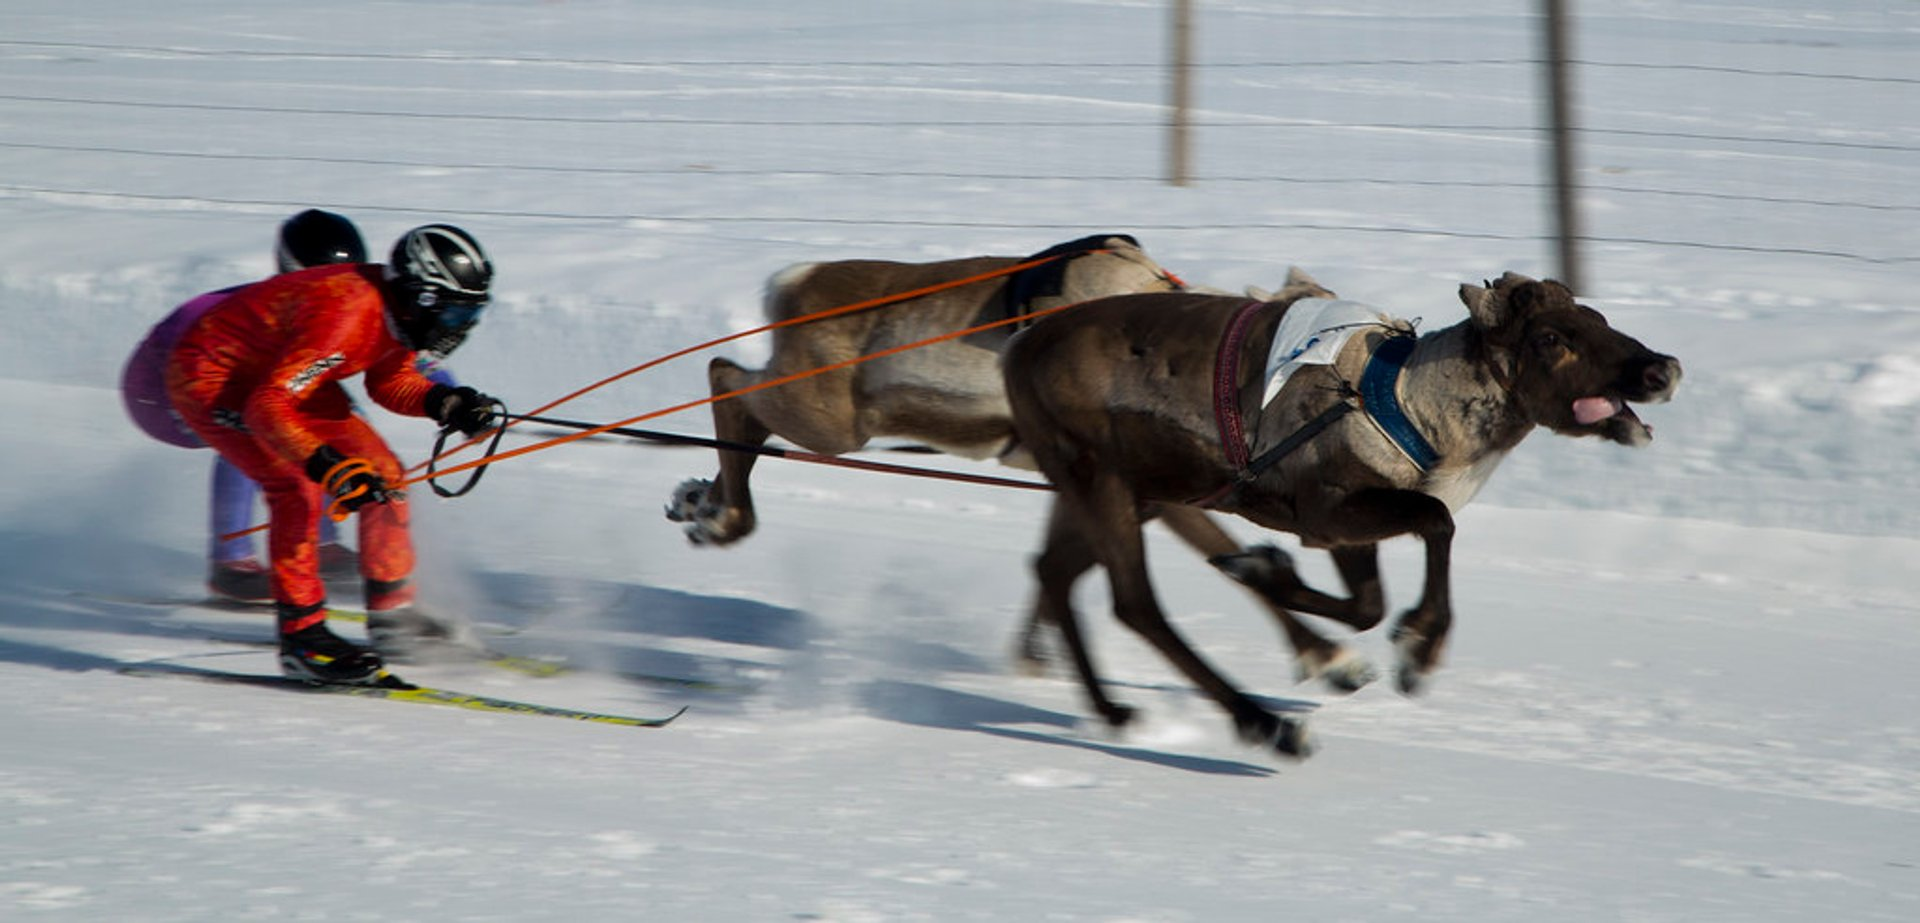 Reindeer skijoring race (deliberately blurred to give feeling of speed), Kautokeino 2020